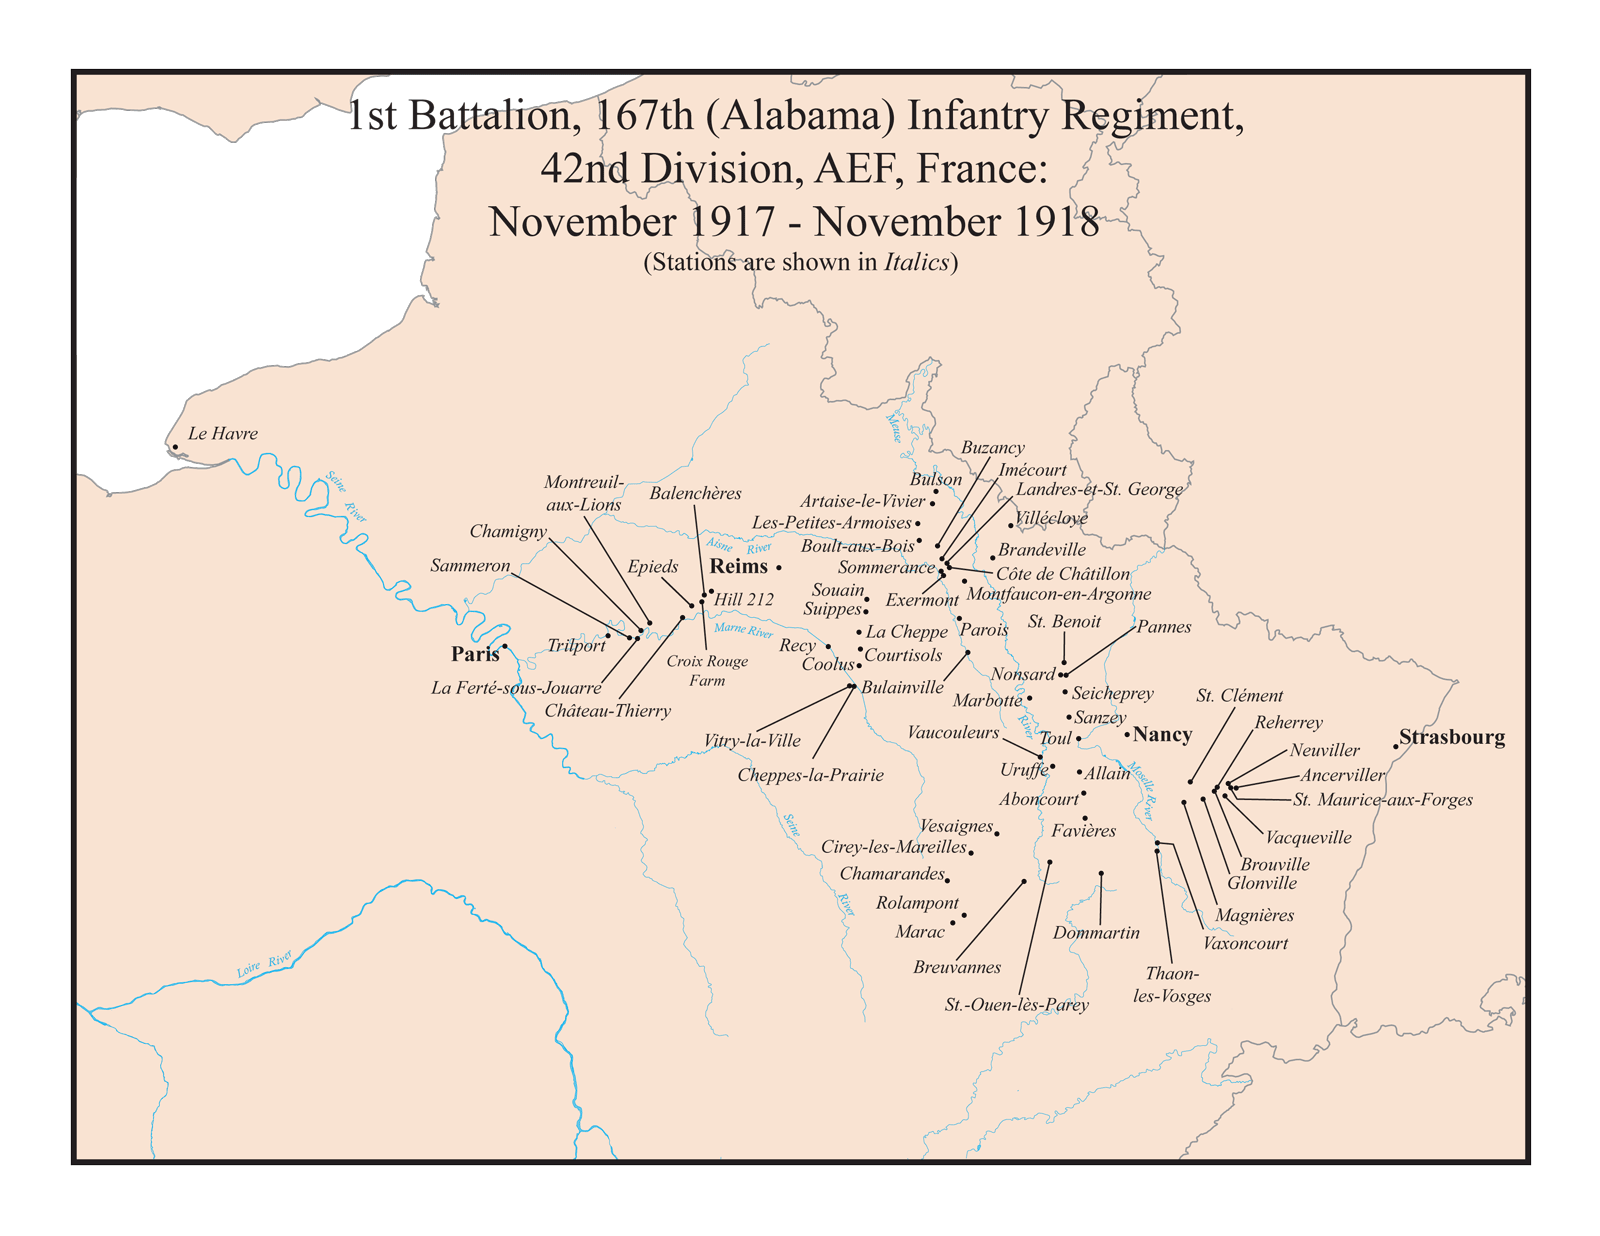 Stations of the 1st Battalion of the 167th Alabama Infantry Regiment